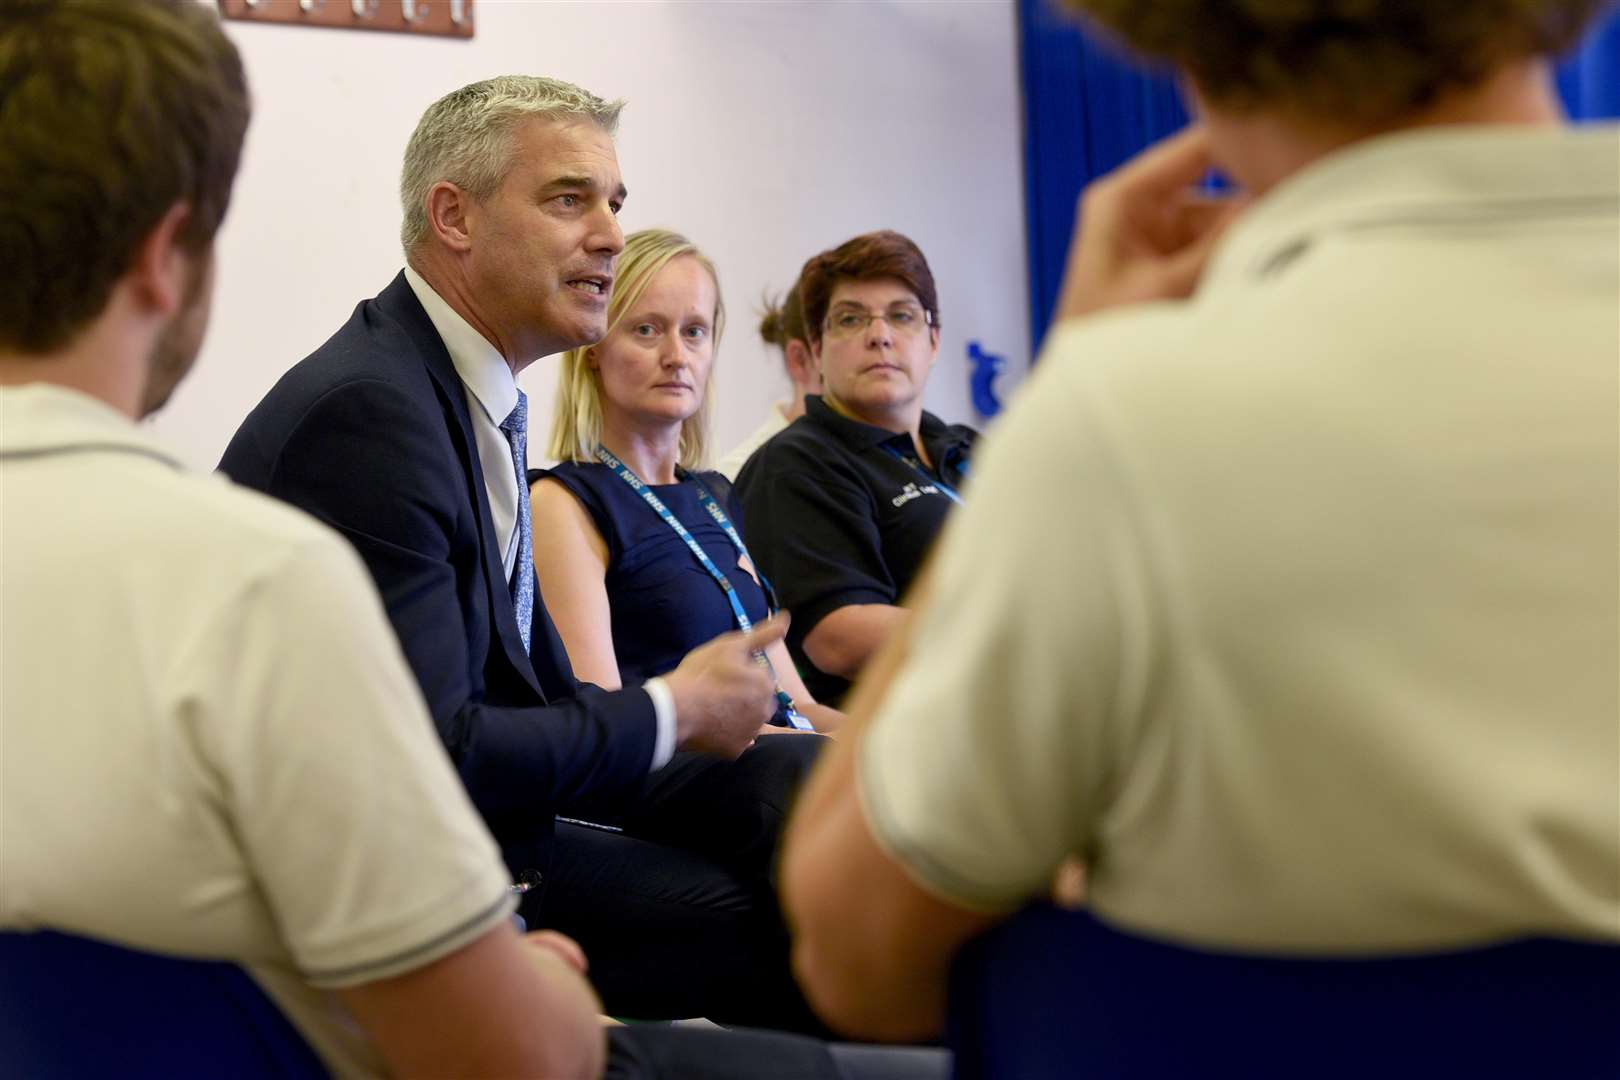 Steve Barclay ministerial vistit to North Cambs Hospital. (3501278)